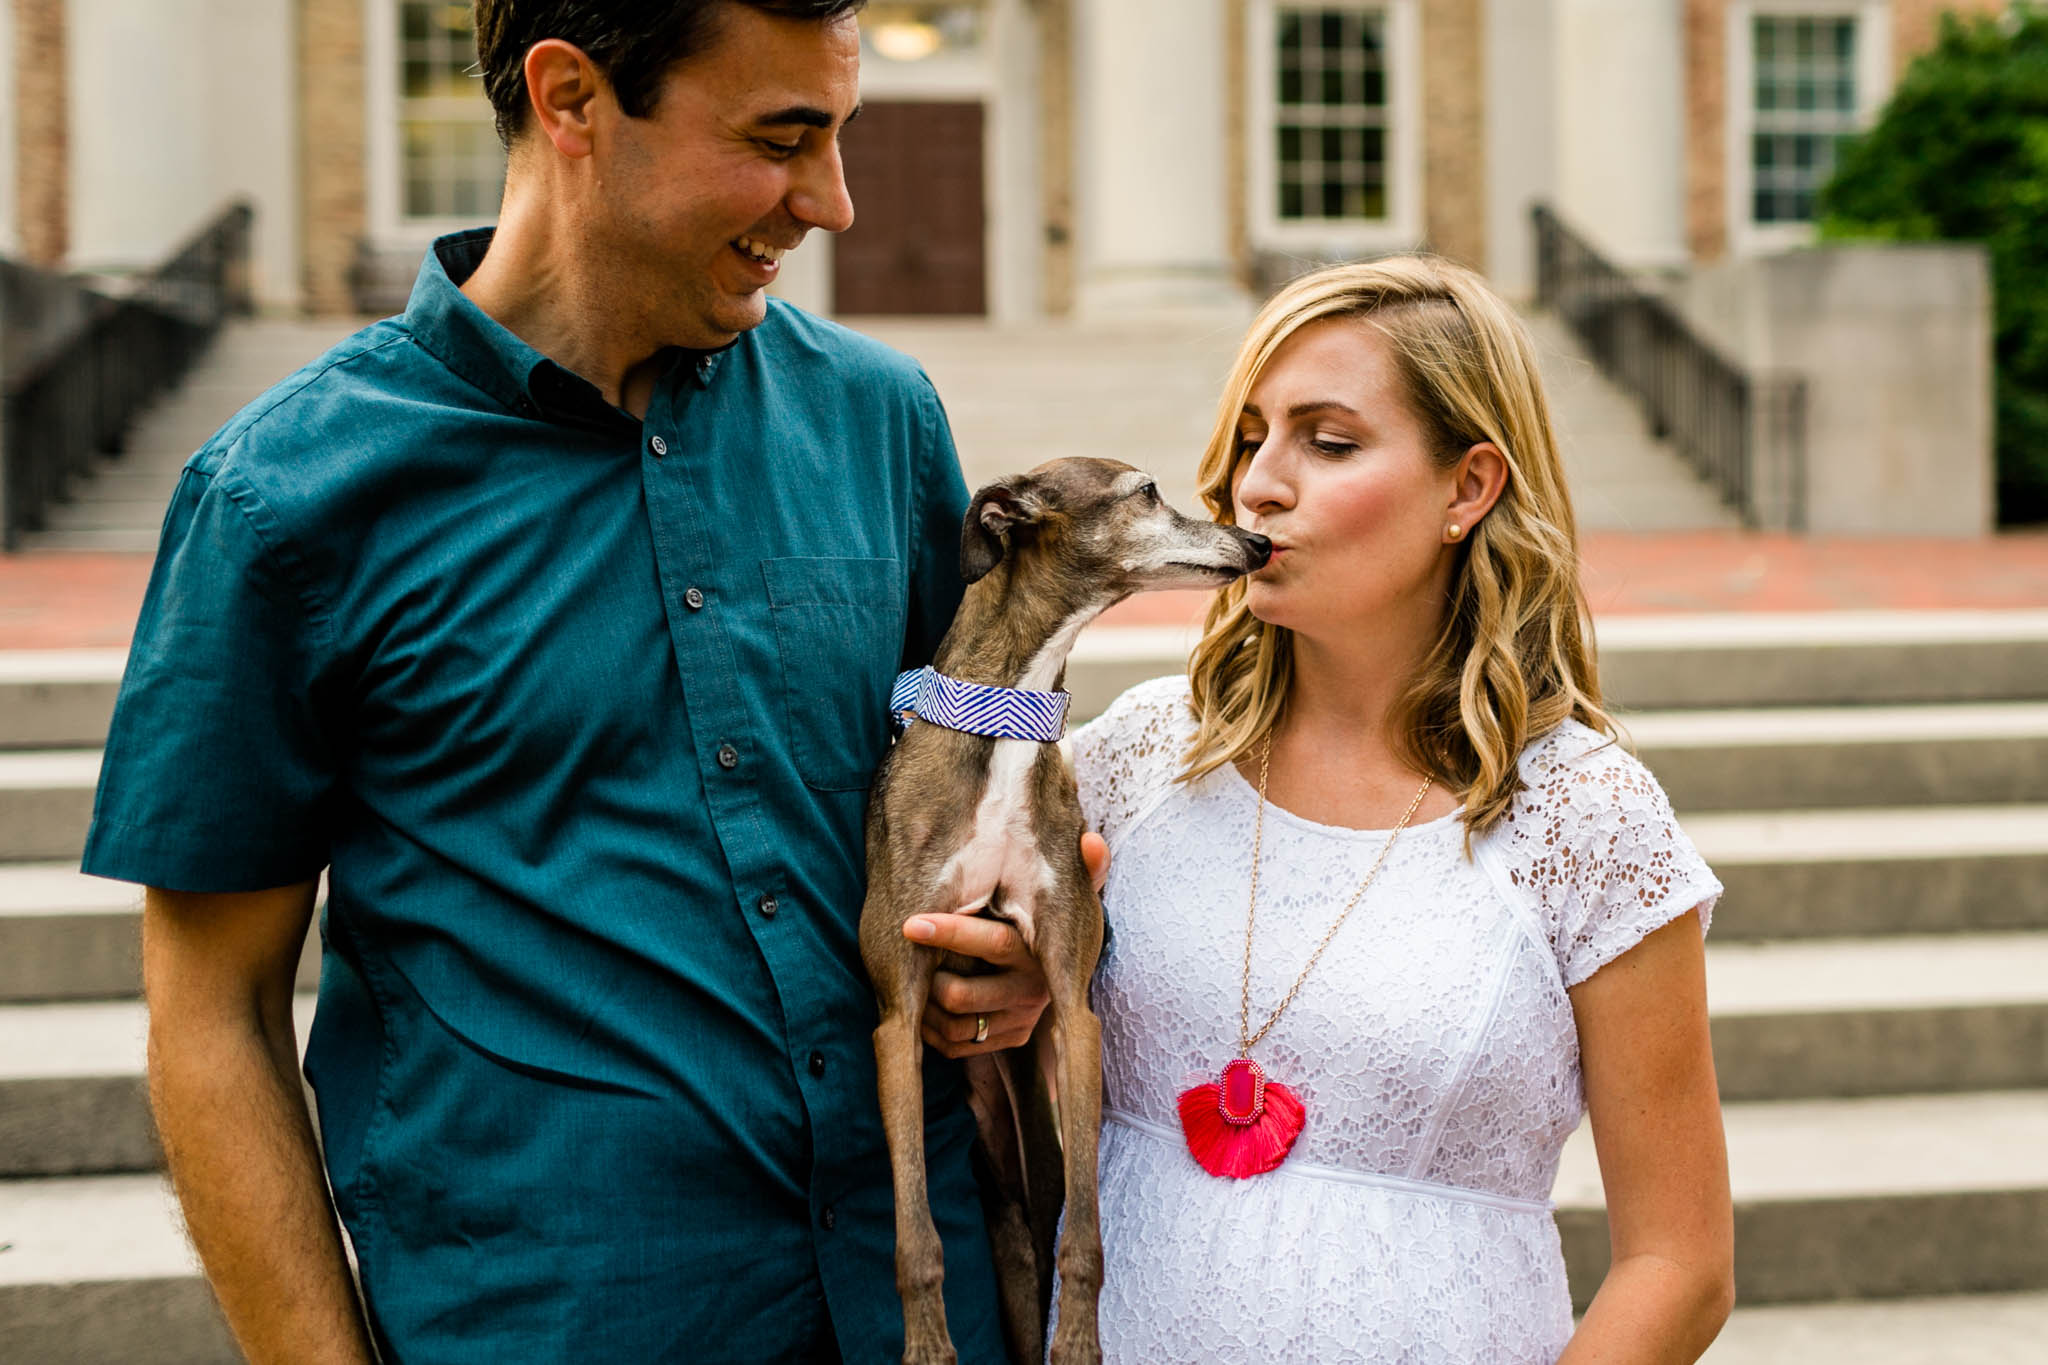 Chapel Hill Maternity Photographer at UNC | By G. Lin Photography | Couple holding dog in front of South Building and dog licking woman's face